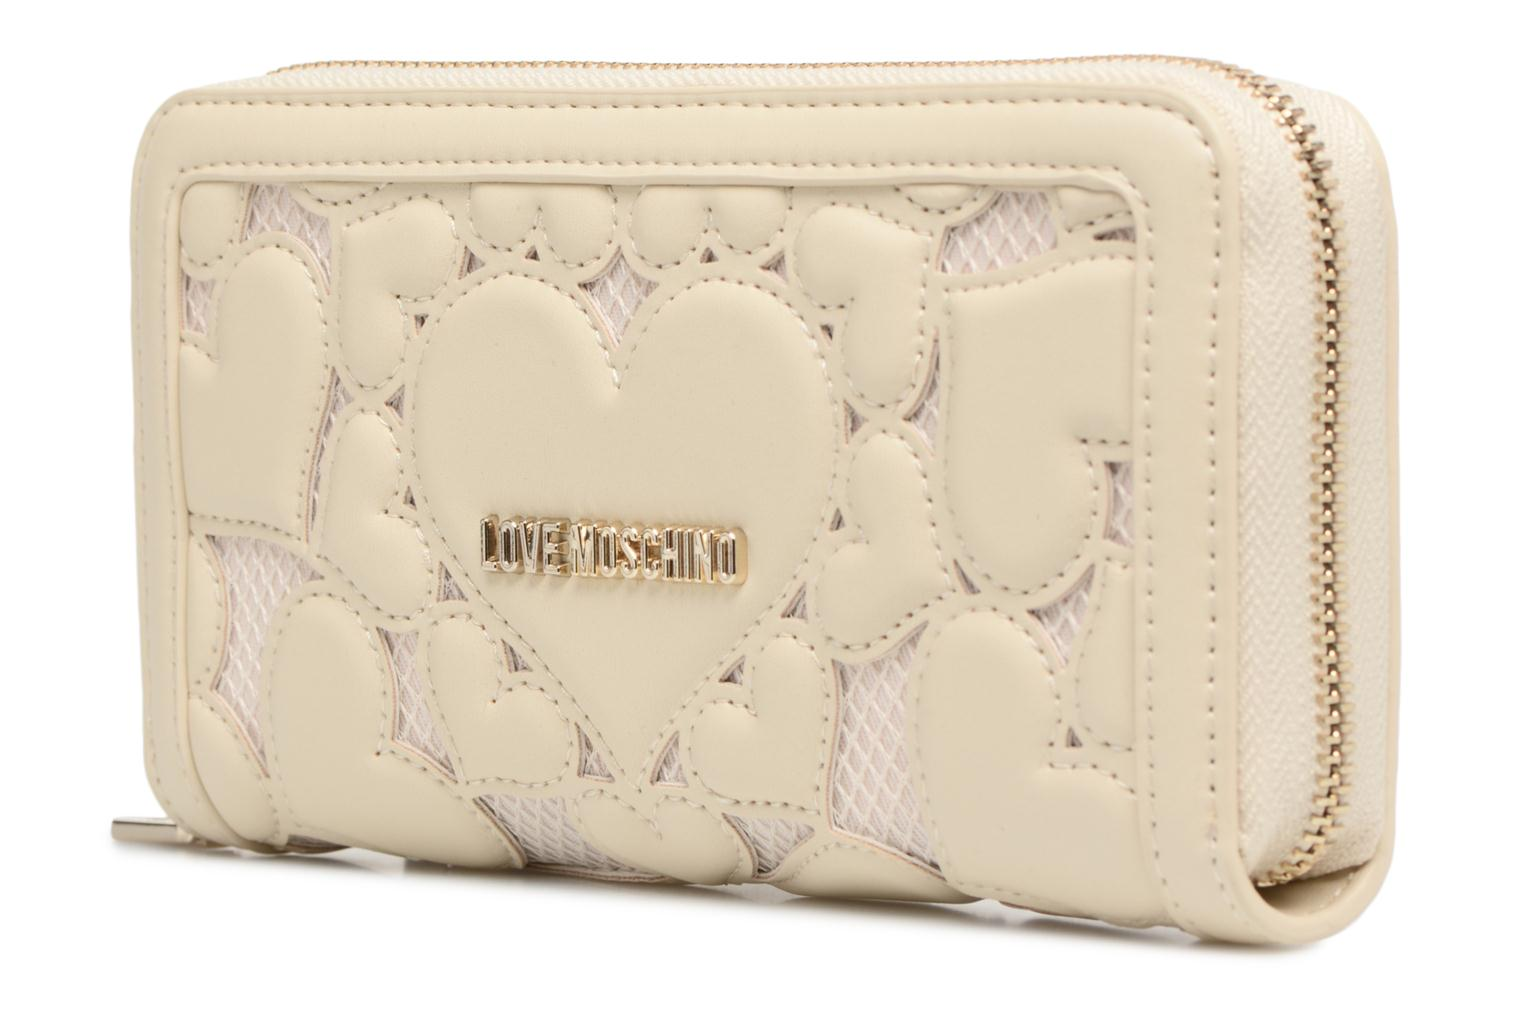 Portefeuille Love Intarsia 10A IVORY